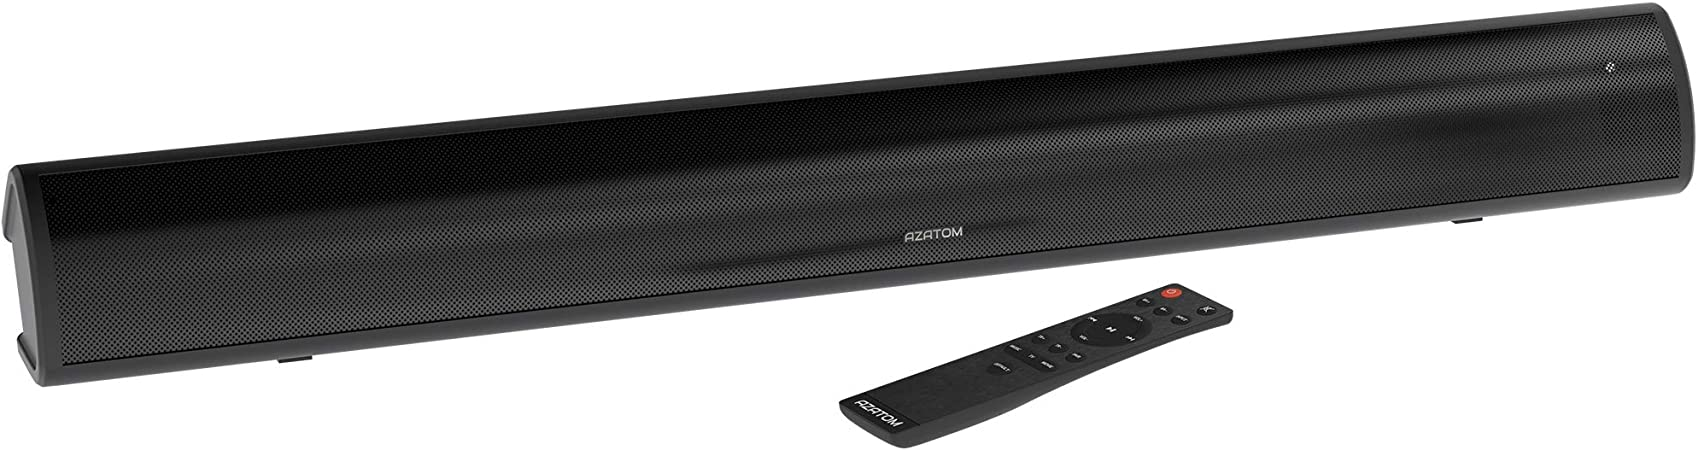 AZATOM Studio Home Soundbar 2.1 with Subwoofer, Surround Sound, 180W Stream Wireless Bluetooth 5.0, Large Remote Control, HDMI Compatible, Optical Cable included (32inch): Amazon.co.uk: Hi-Fi & Speakers